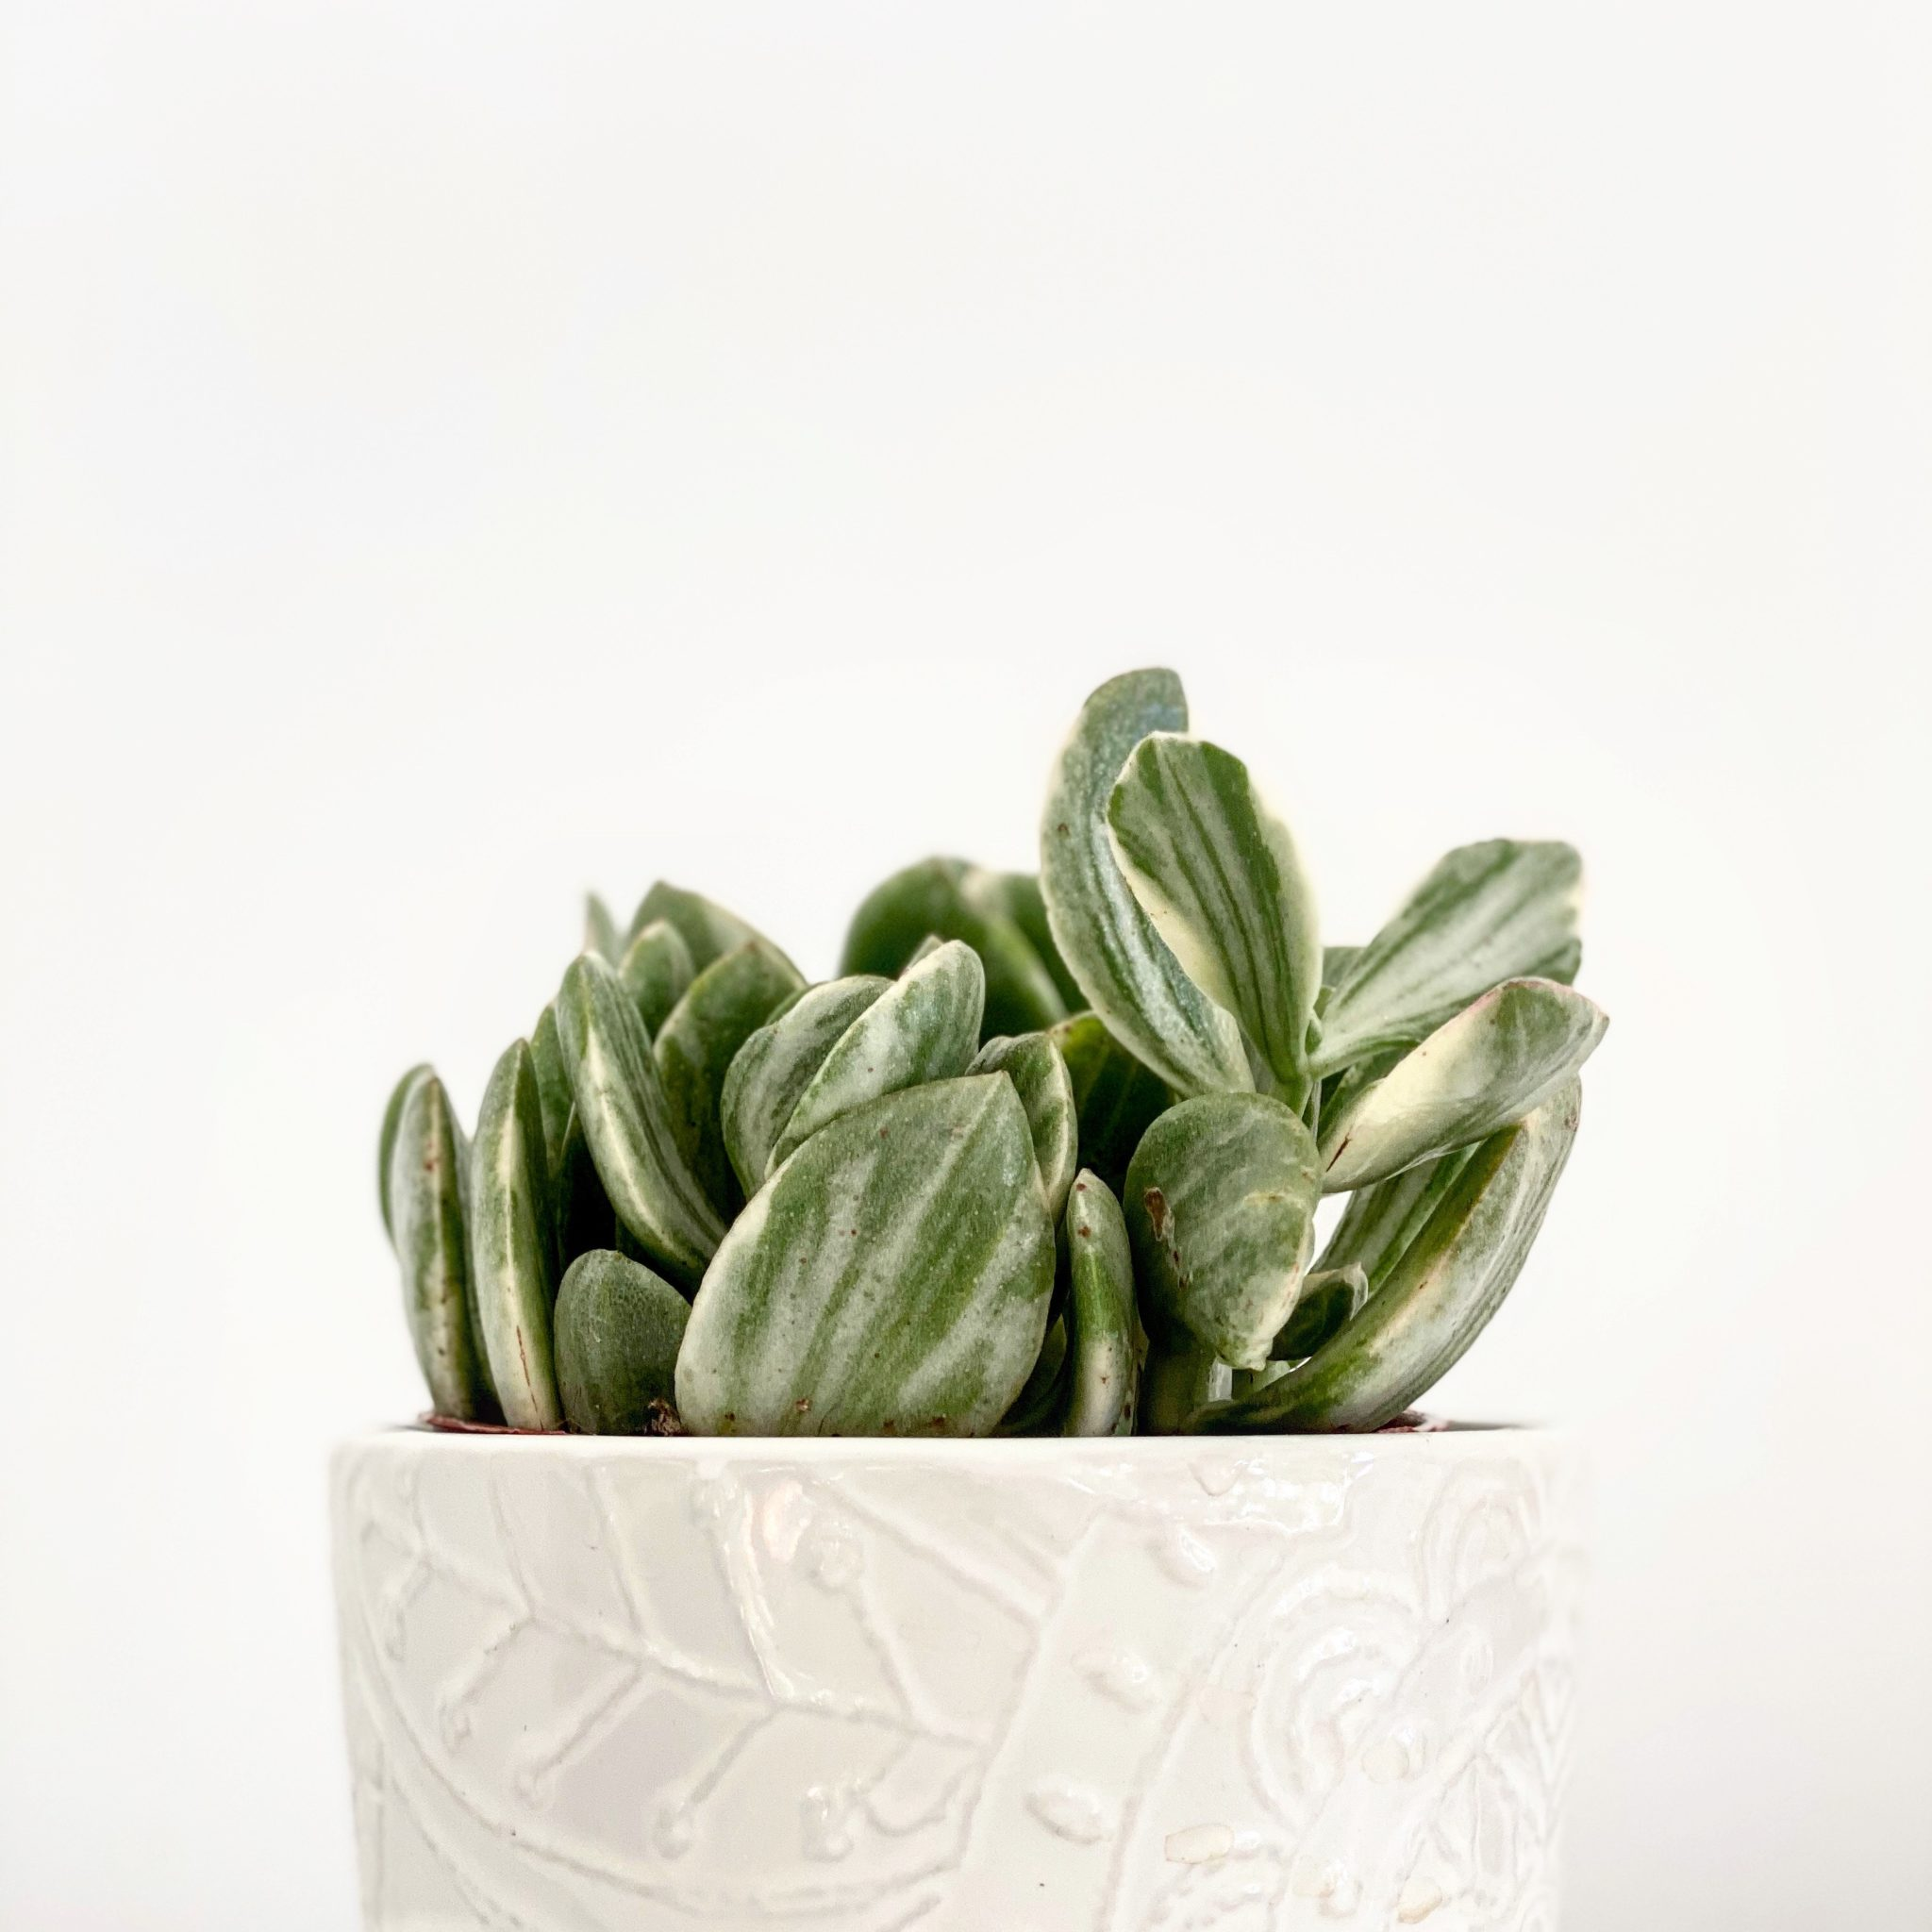 Sansevieria Plant Feng Shui 7 feng shui plants that are easy to keep alive - my tasteful